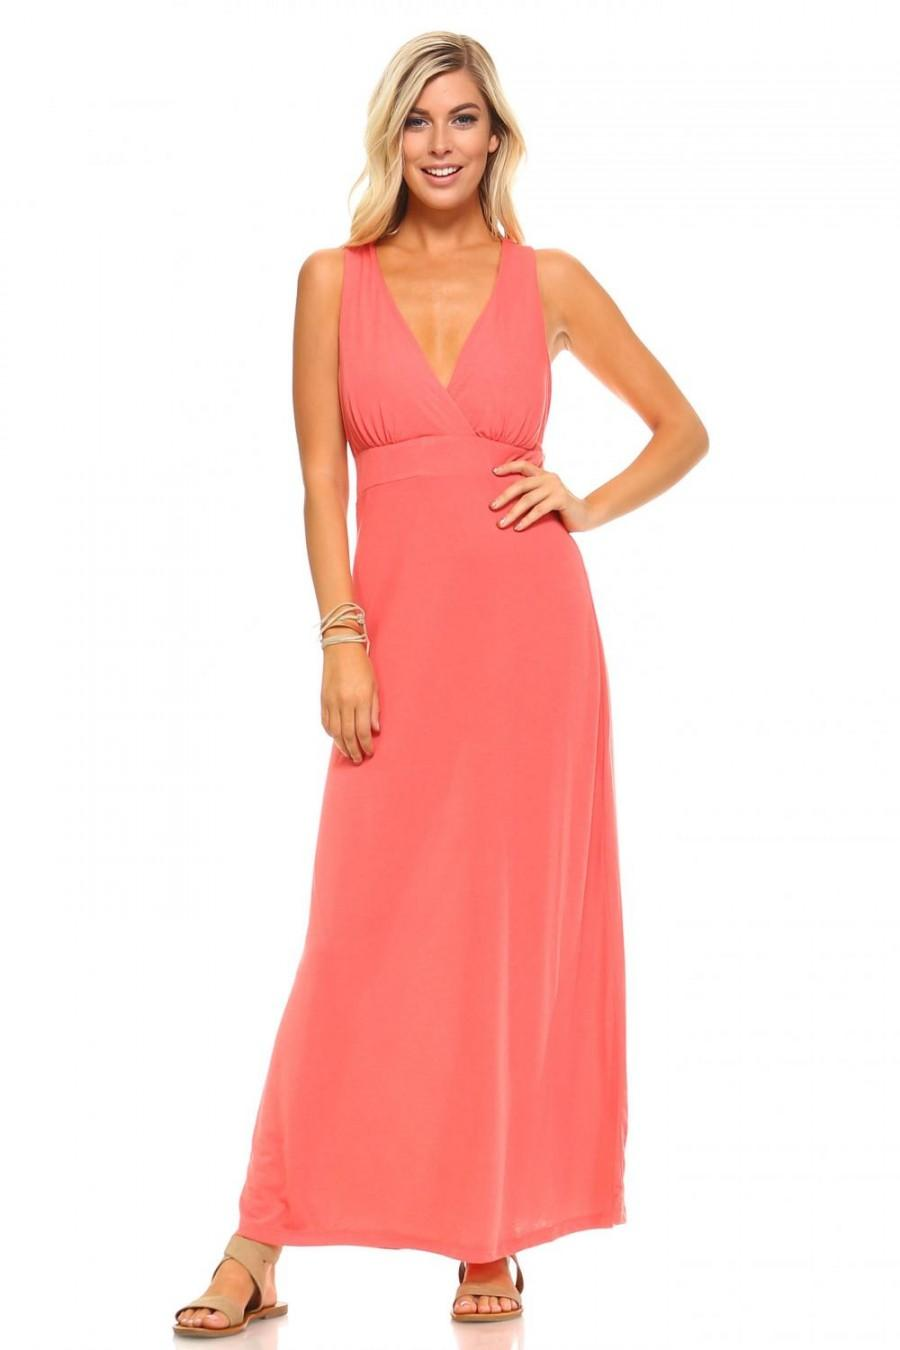 Mariage - Christine V Women's Halter Maxi Dress with Cross Back Straps